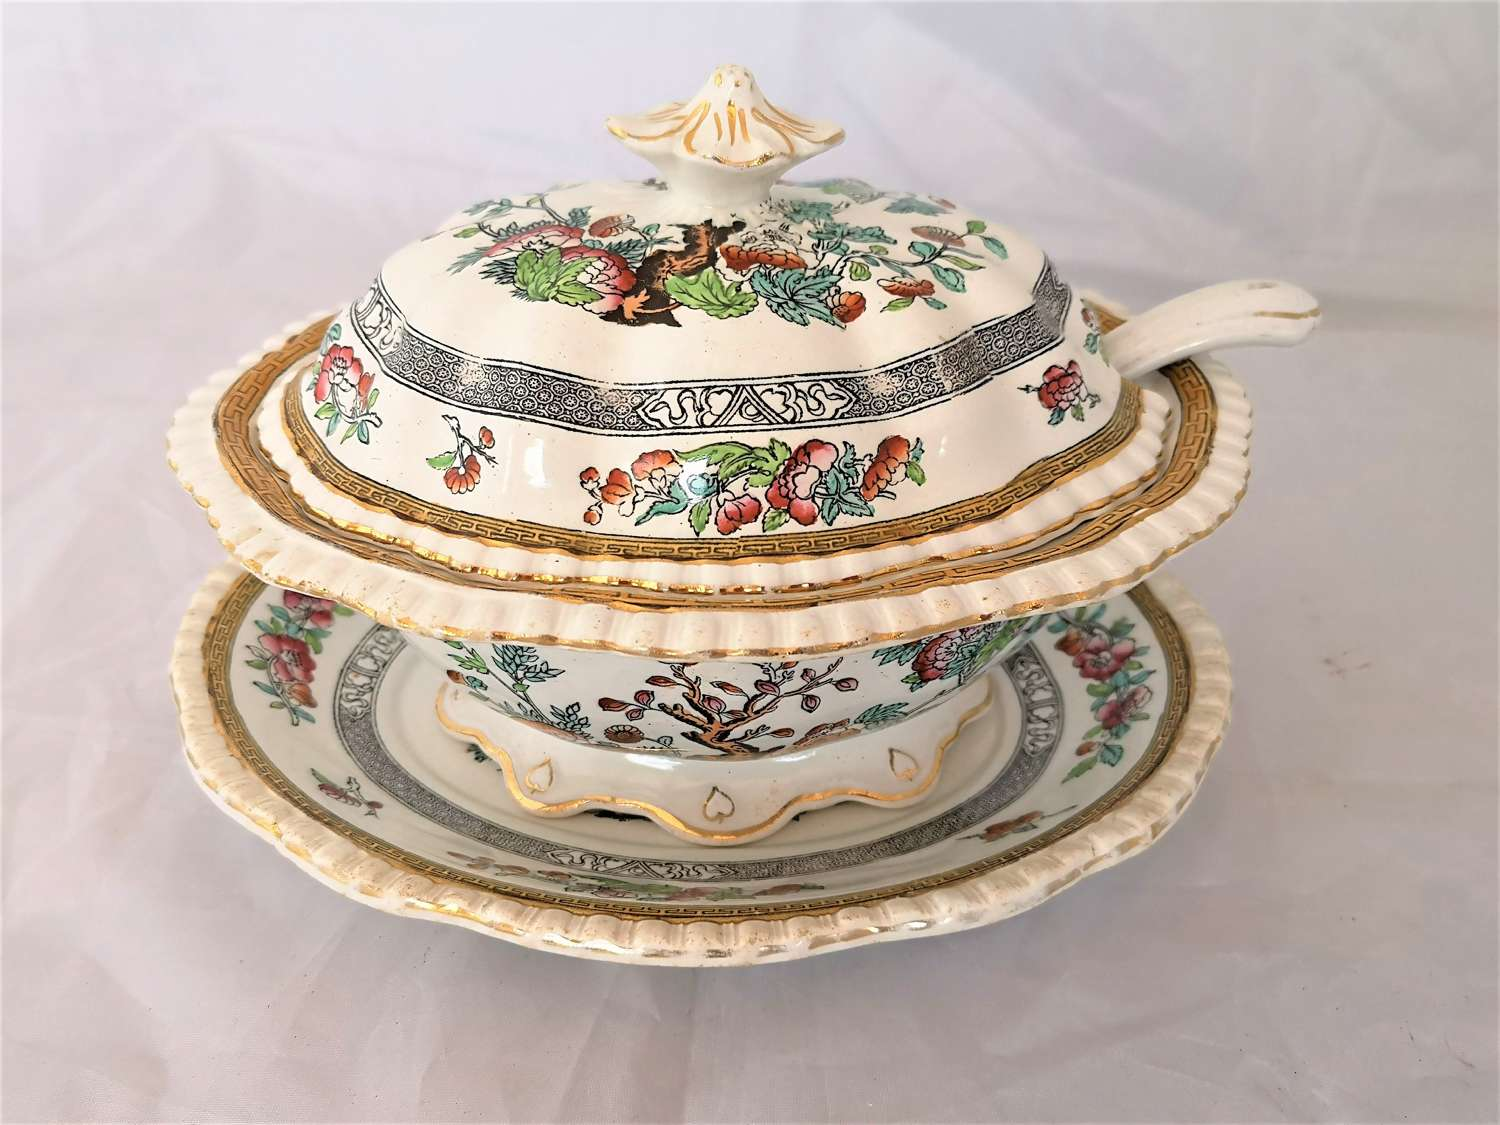 19th century Adams tureen with ladle